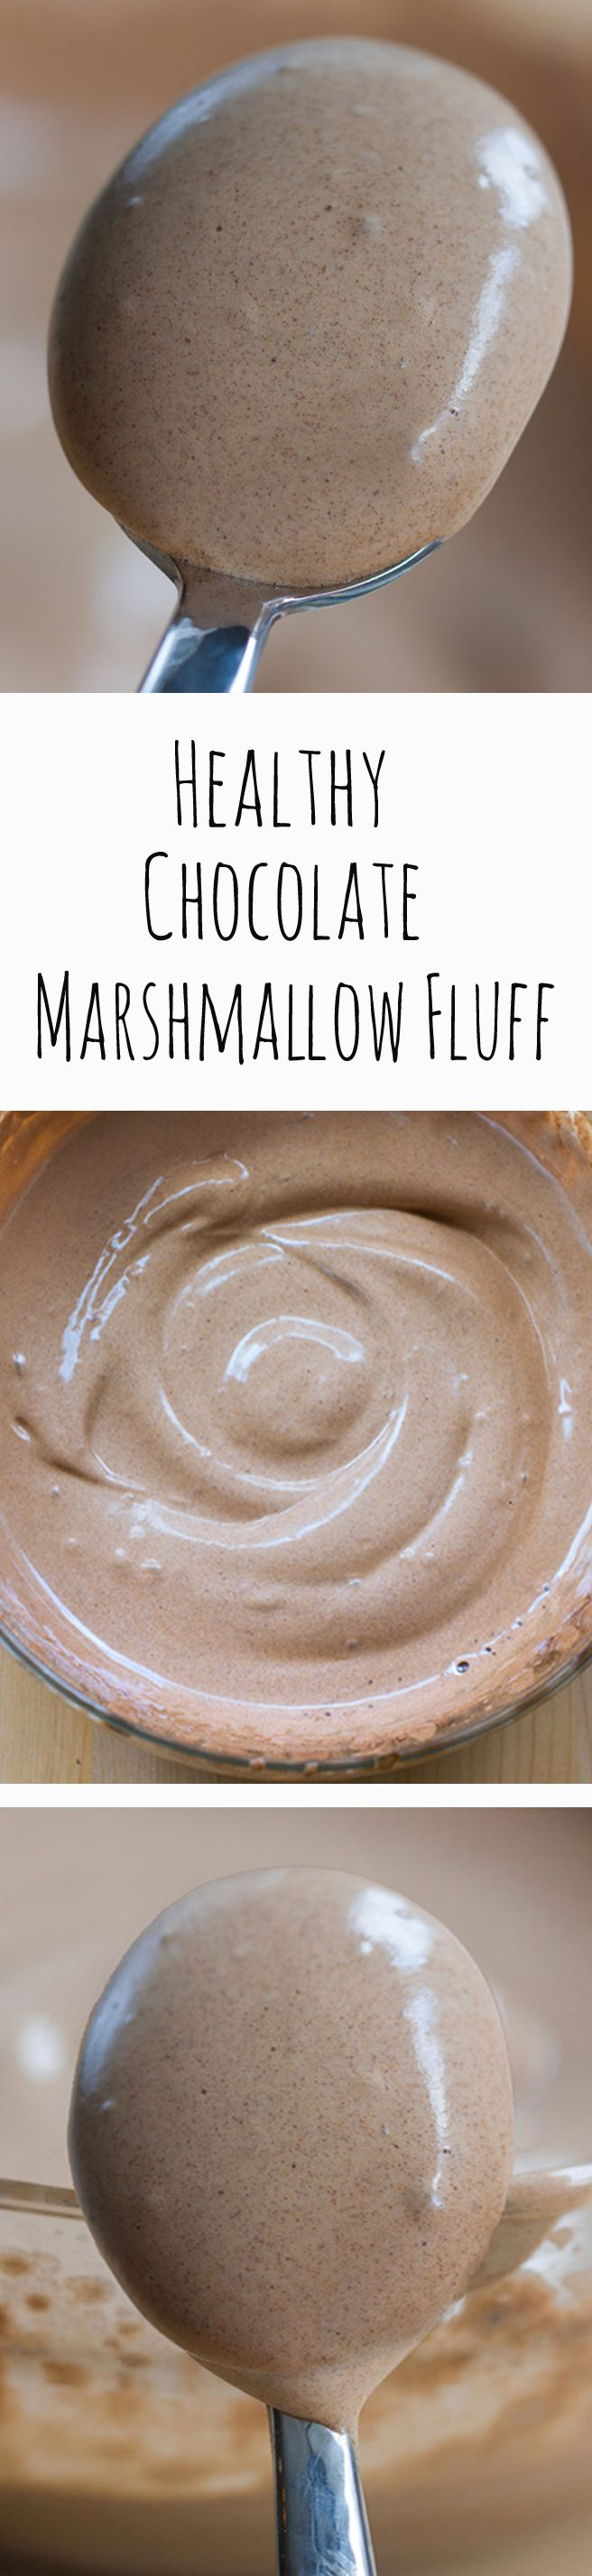 No corn syrup, no powdered sugar, no raw eggs... You will NEVER believe the ingredients that make this! ... Full recipe: http://chocolatecoveredkatie.com/2015/04/30/healthy-vegan-marshmallow-fluff/ @choccoveredkt